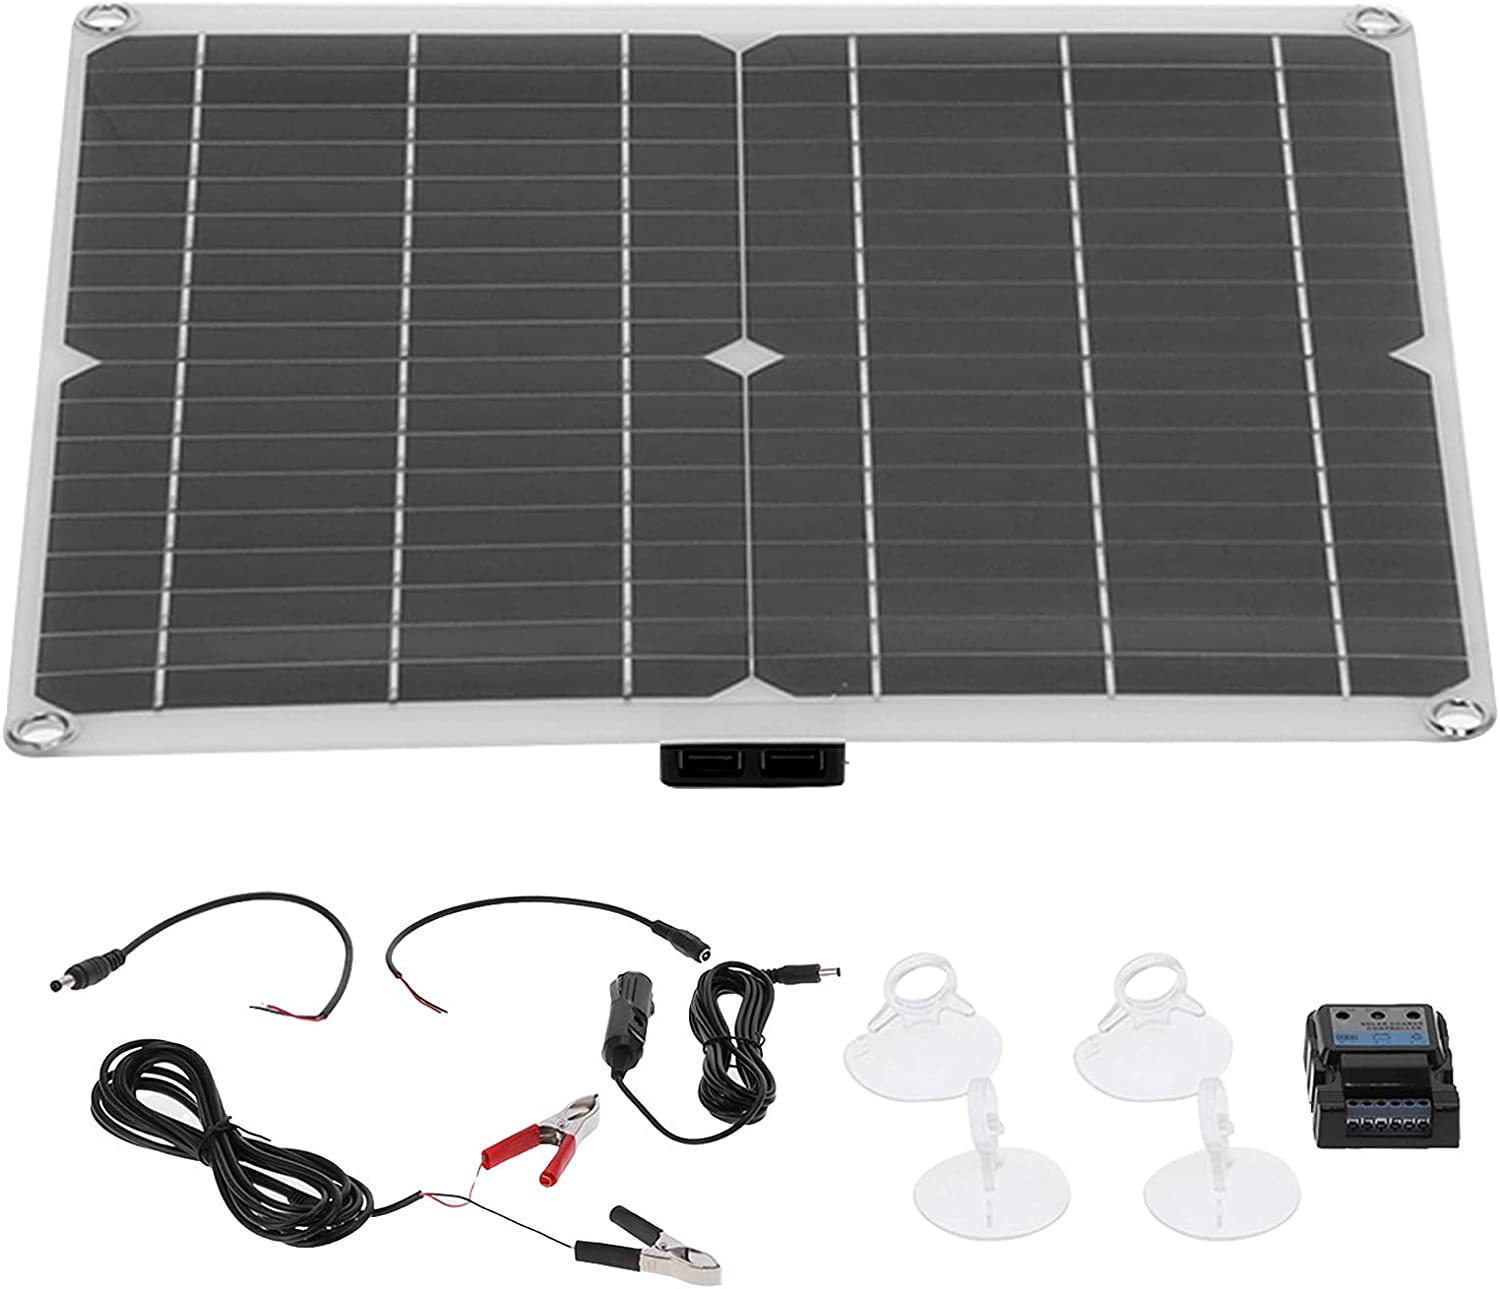 SC1820 Solar price Car Battery Silicon Inexpensive Charger Monocrystalline Waterpr